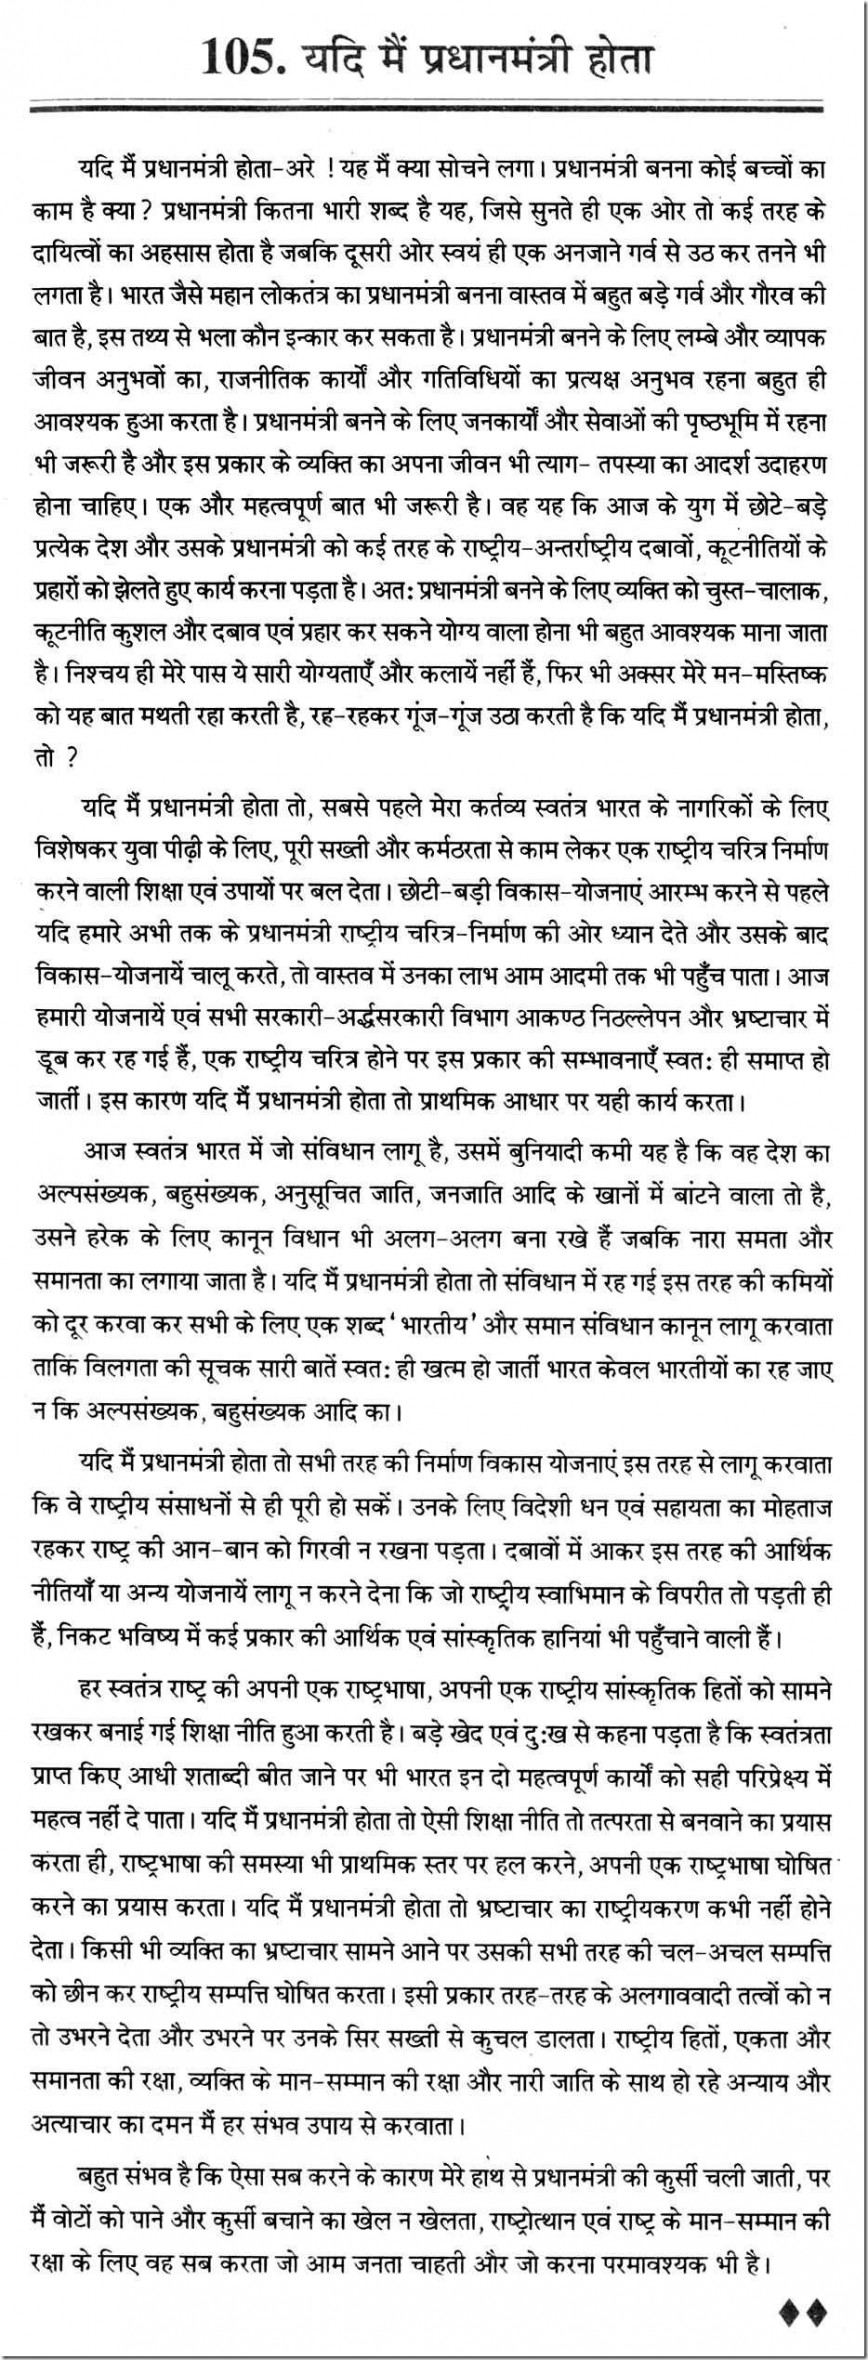 010 Prime Minister Essay Term Paper Writing Service Cmcourseworkhwja Writings Reviews 10106 Outstanding On In Hindi Narendra Modi Marathi